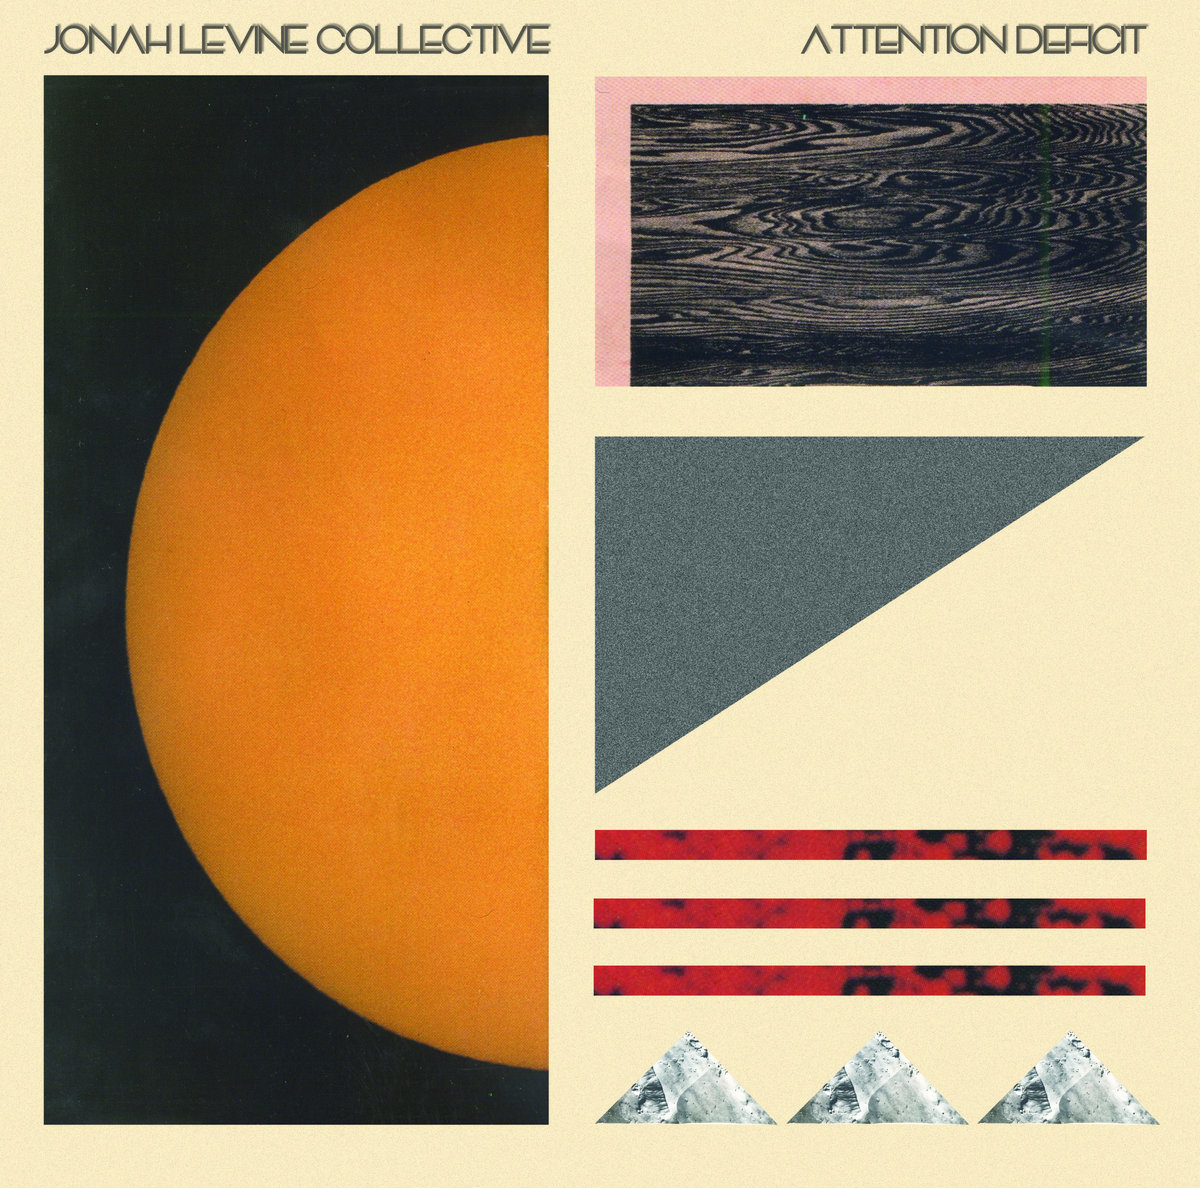 The Selling Of Attention Deficit >> Attention Deficit World Galaxy Records